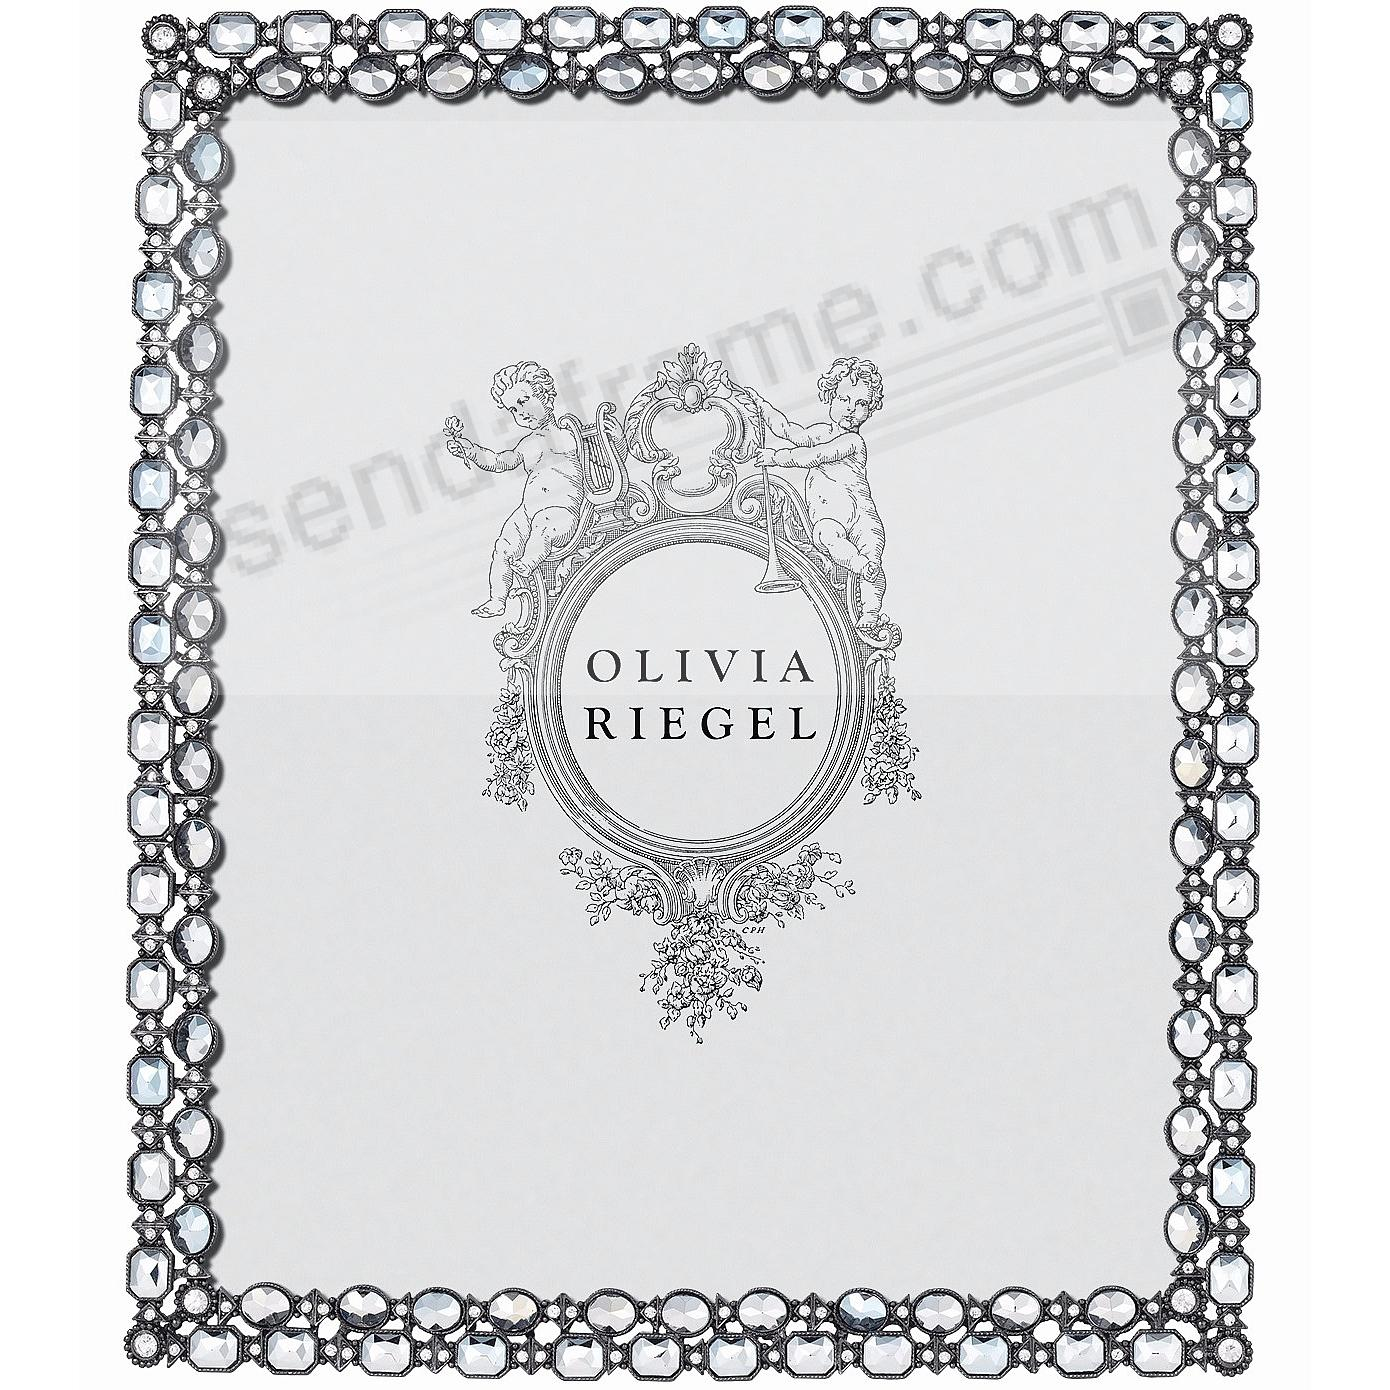 Dorian pewter hematite crystal 8x10 frame by olivia riegel dorian pewter hematite crystal 8x10 frame by olivia riegel jeuxipadfo Image collections